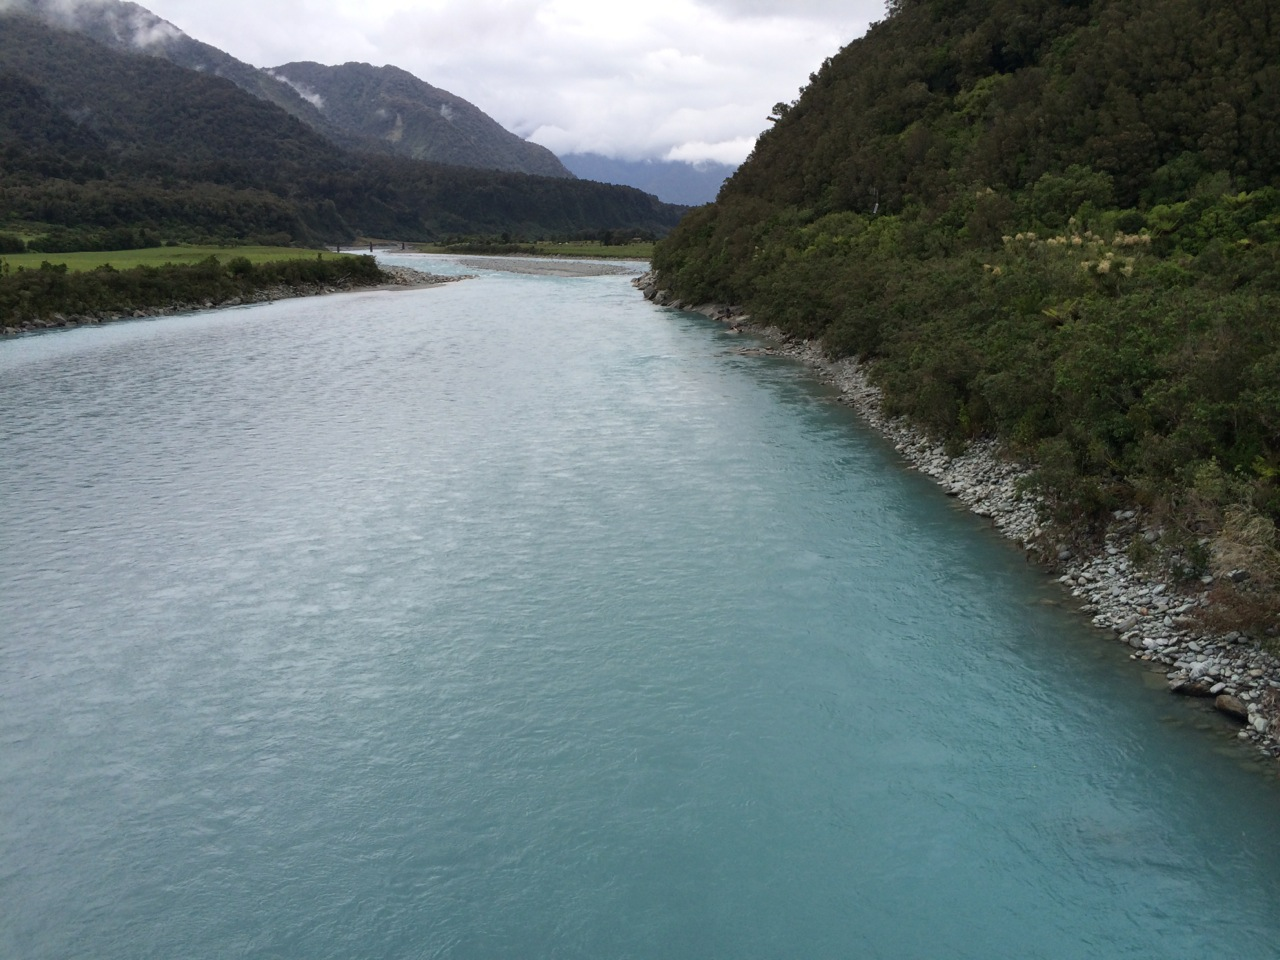 Glacier-fed river. Not really sure I do it justice with this photo but it really was something to see.